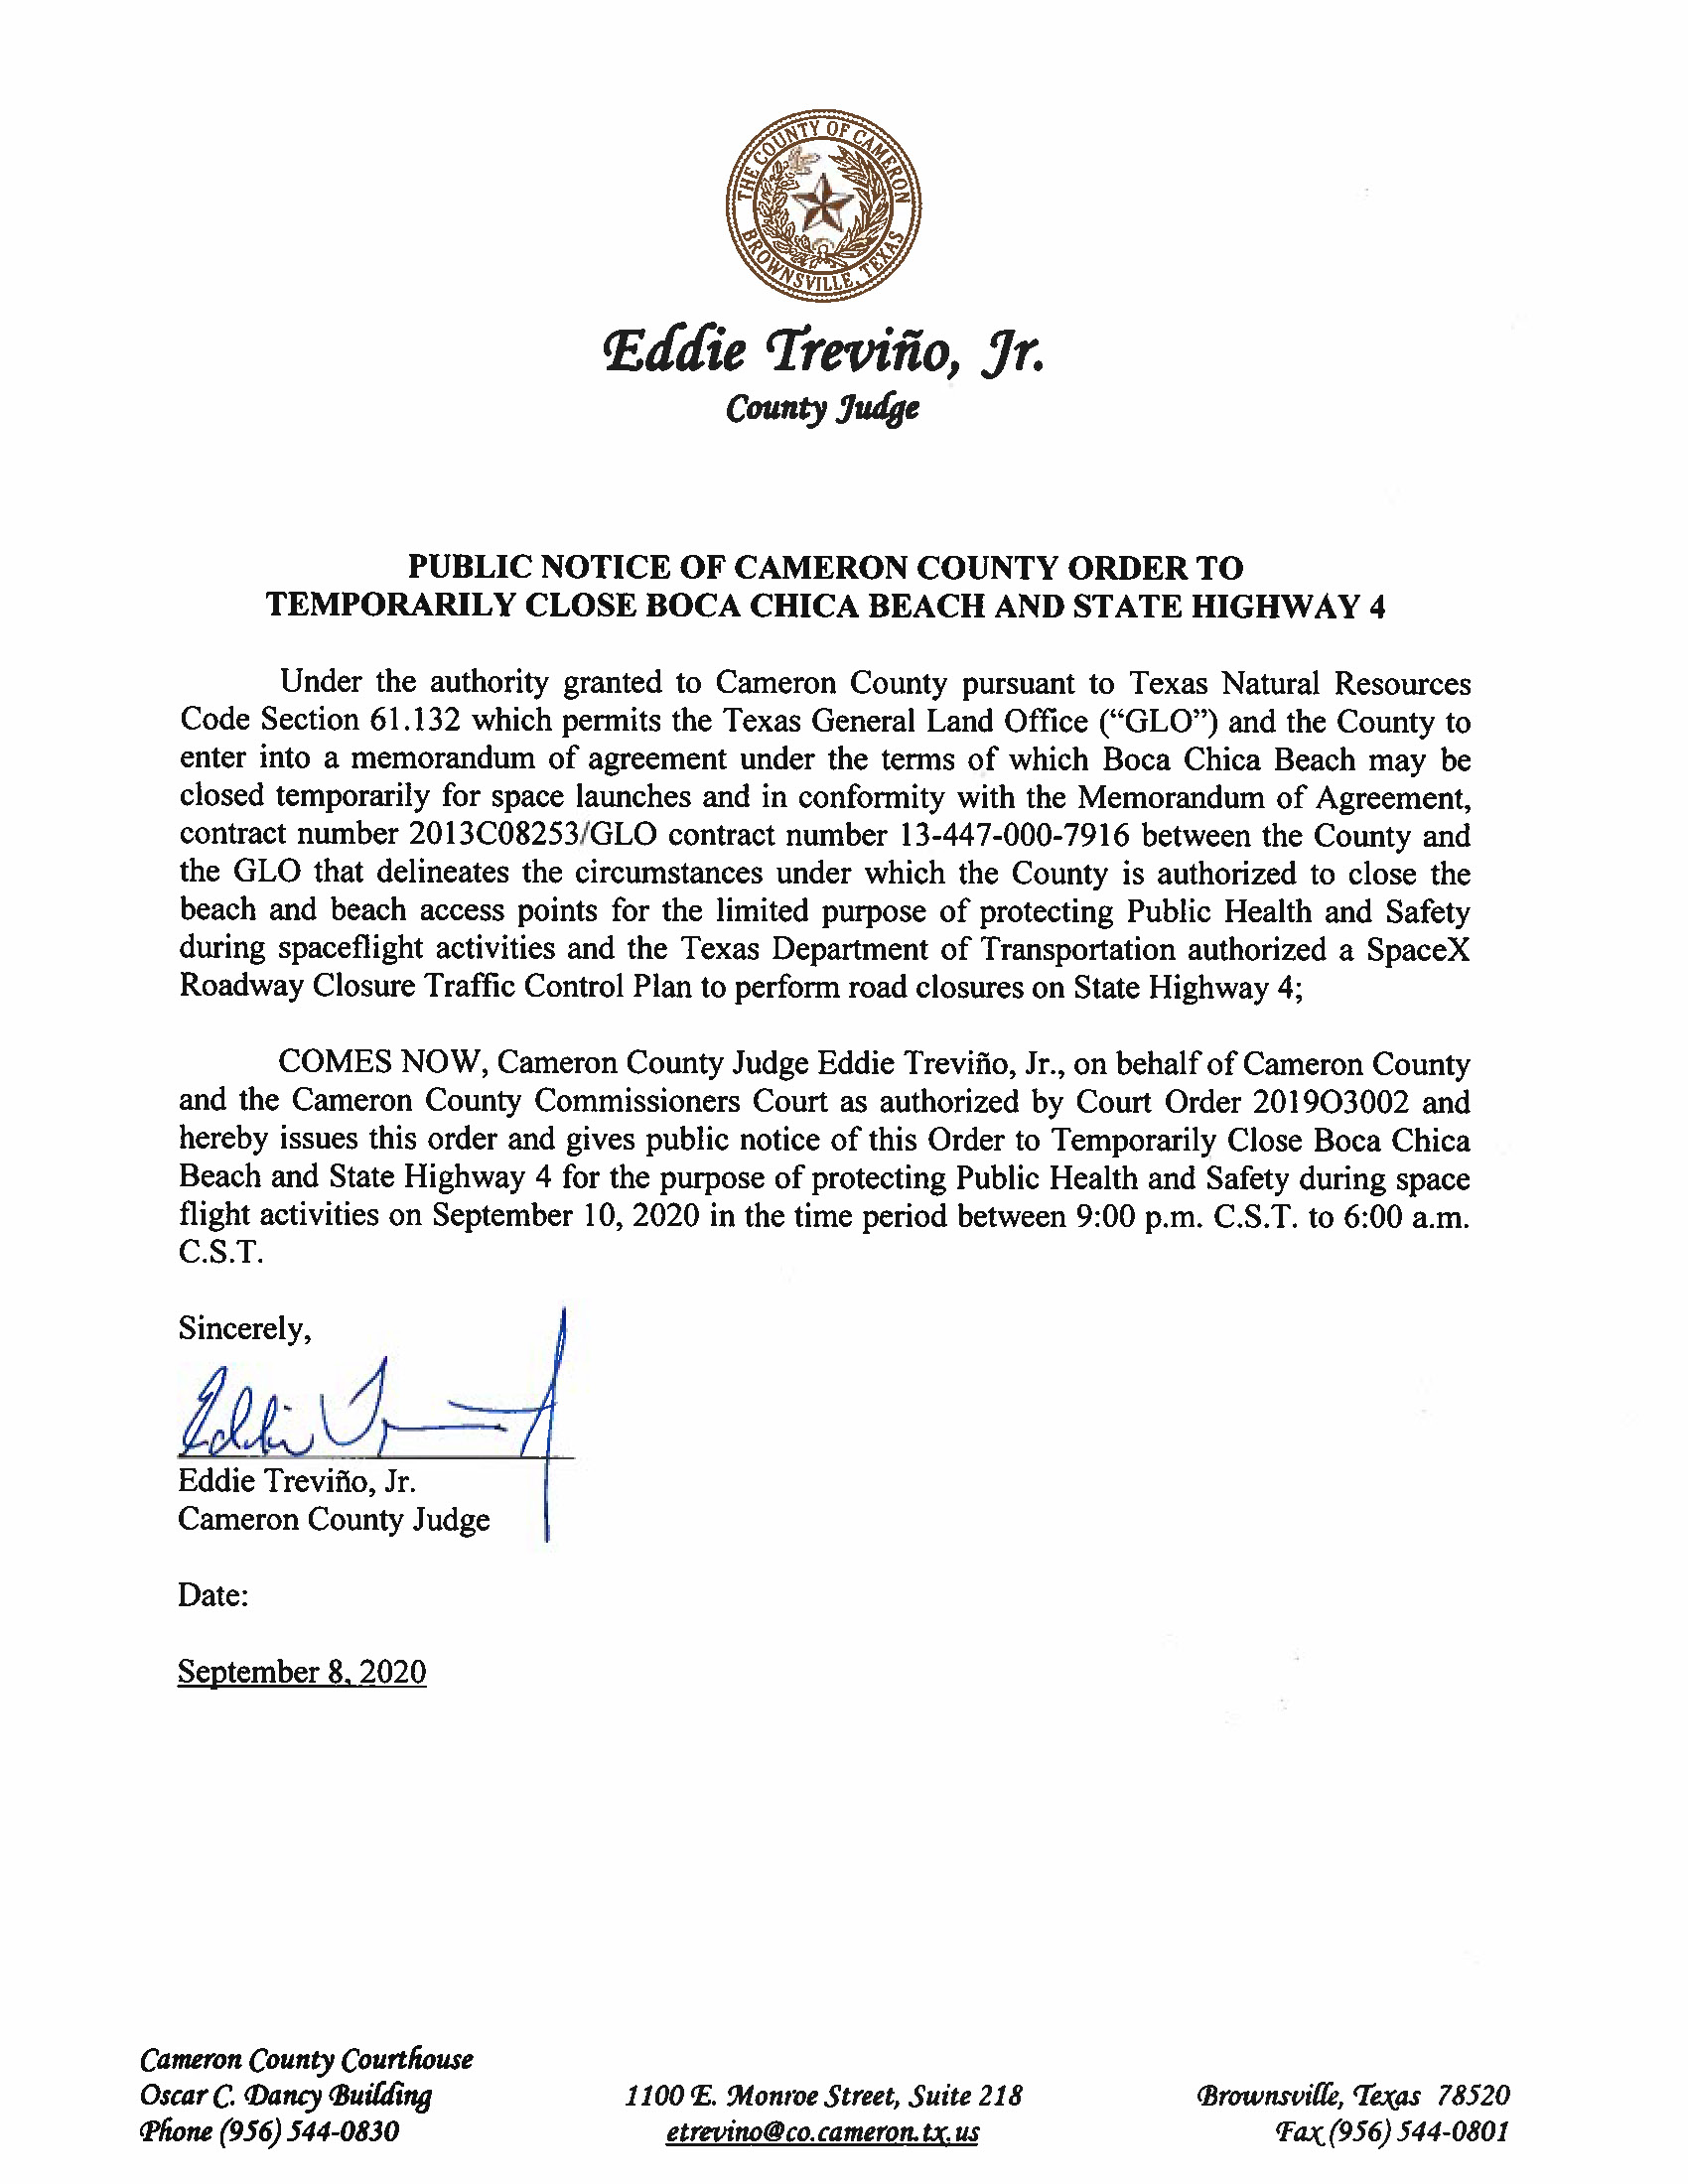 PUBLIC NOTICE OF CAMERON COUNTY ORDER TO TEMP. BEACH CLOSURE AND HWY. 9.10.20.docx Page 1